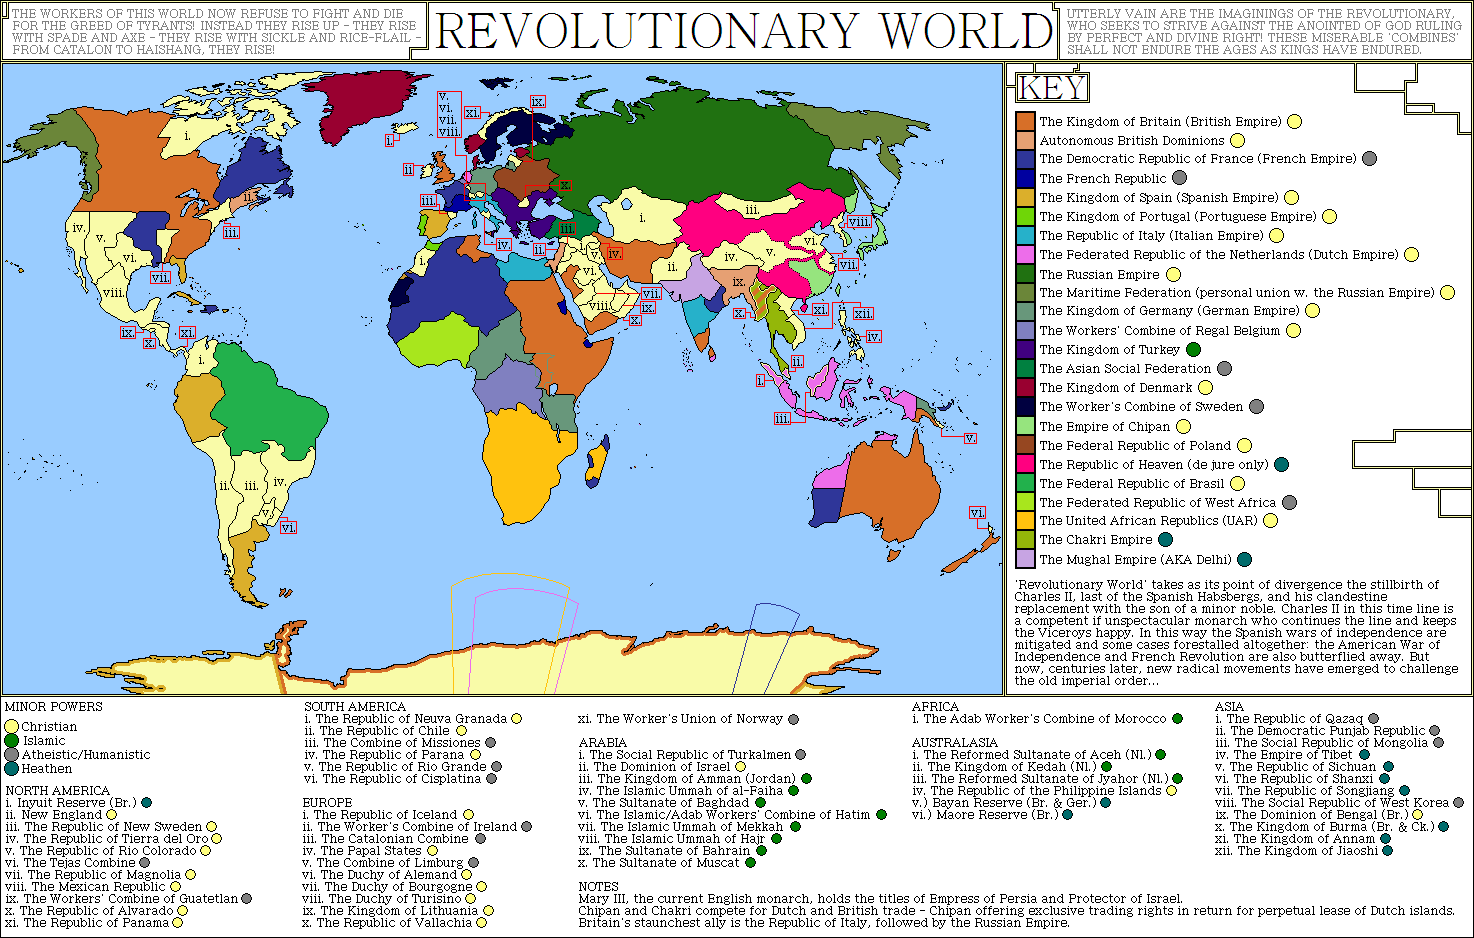 Revolutionary World an alternate history map by SRegan on DeviantArt